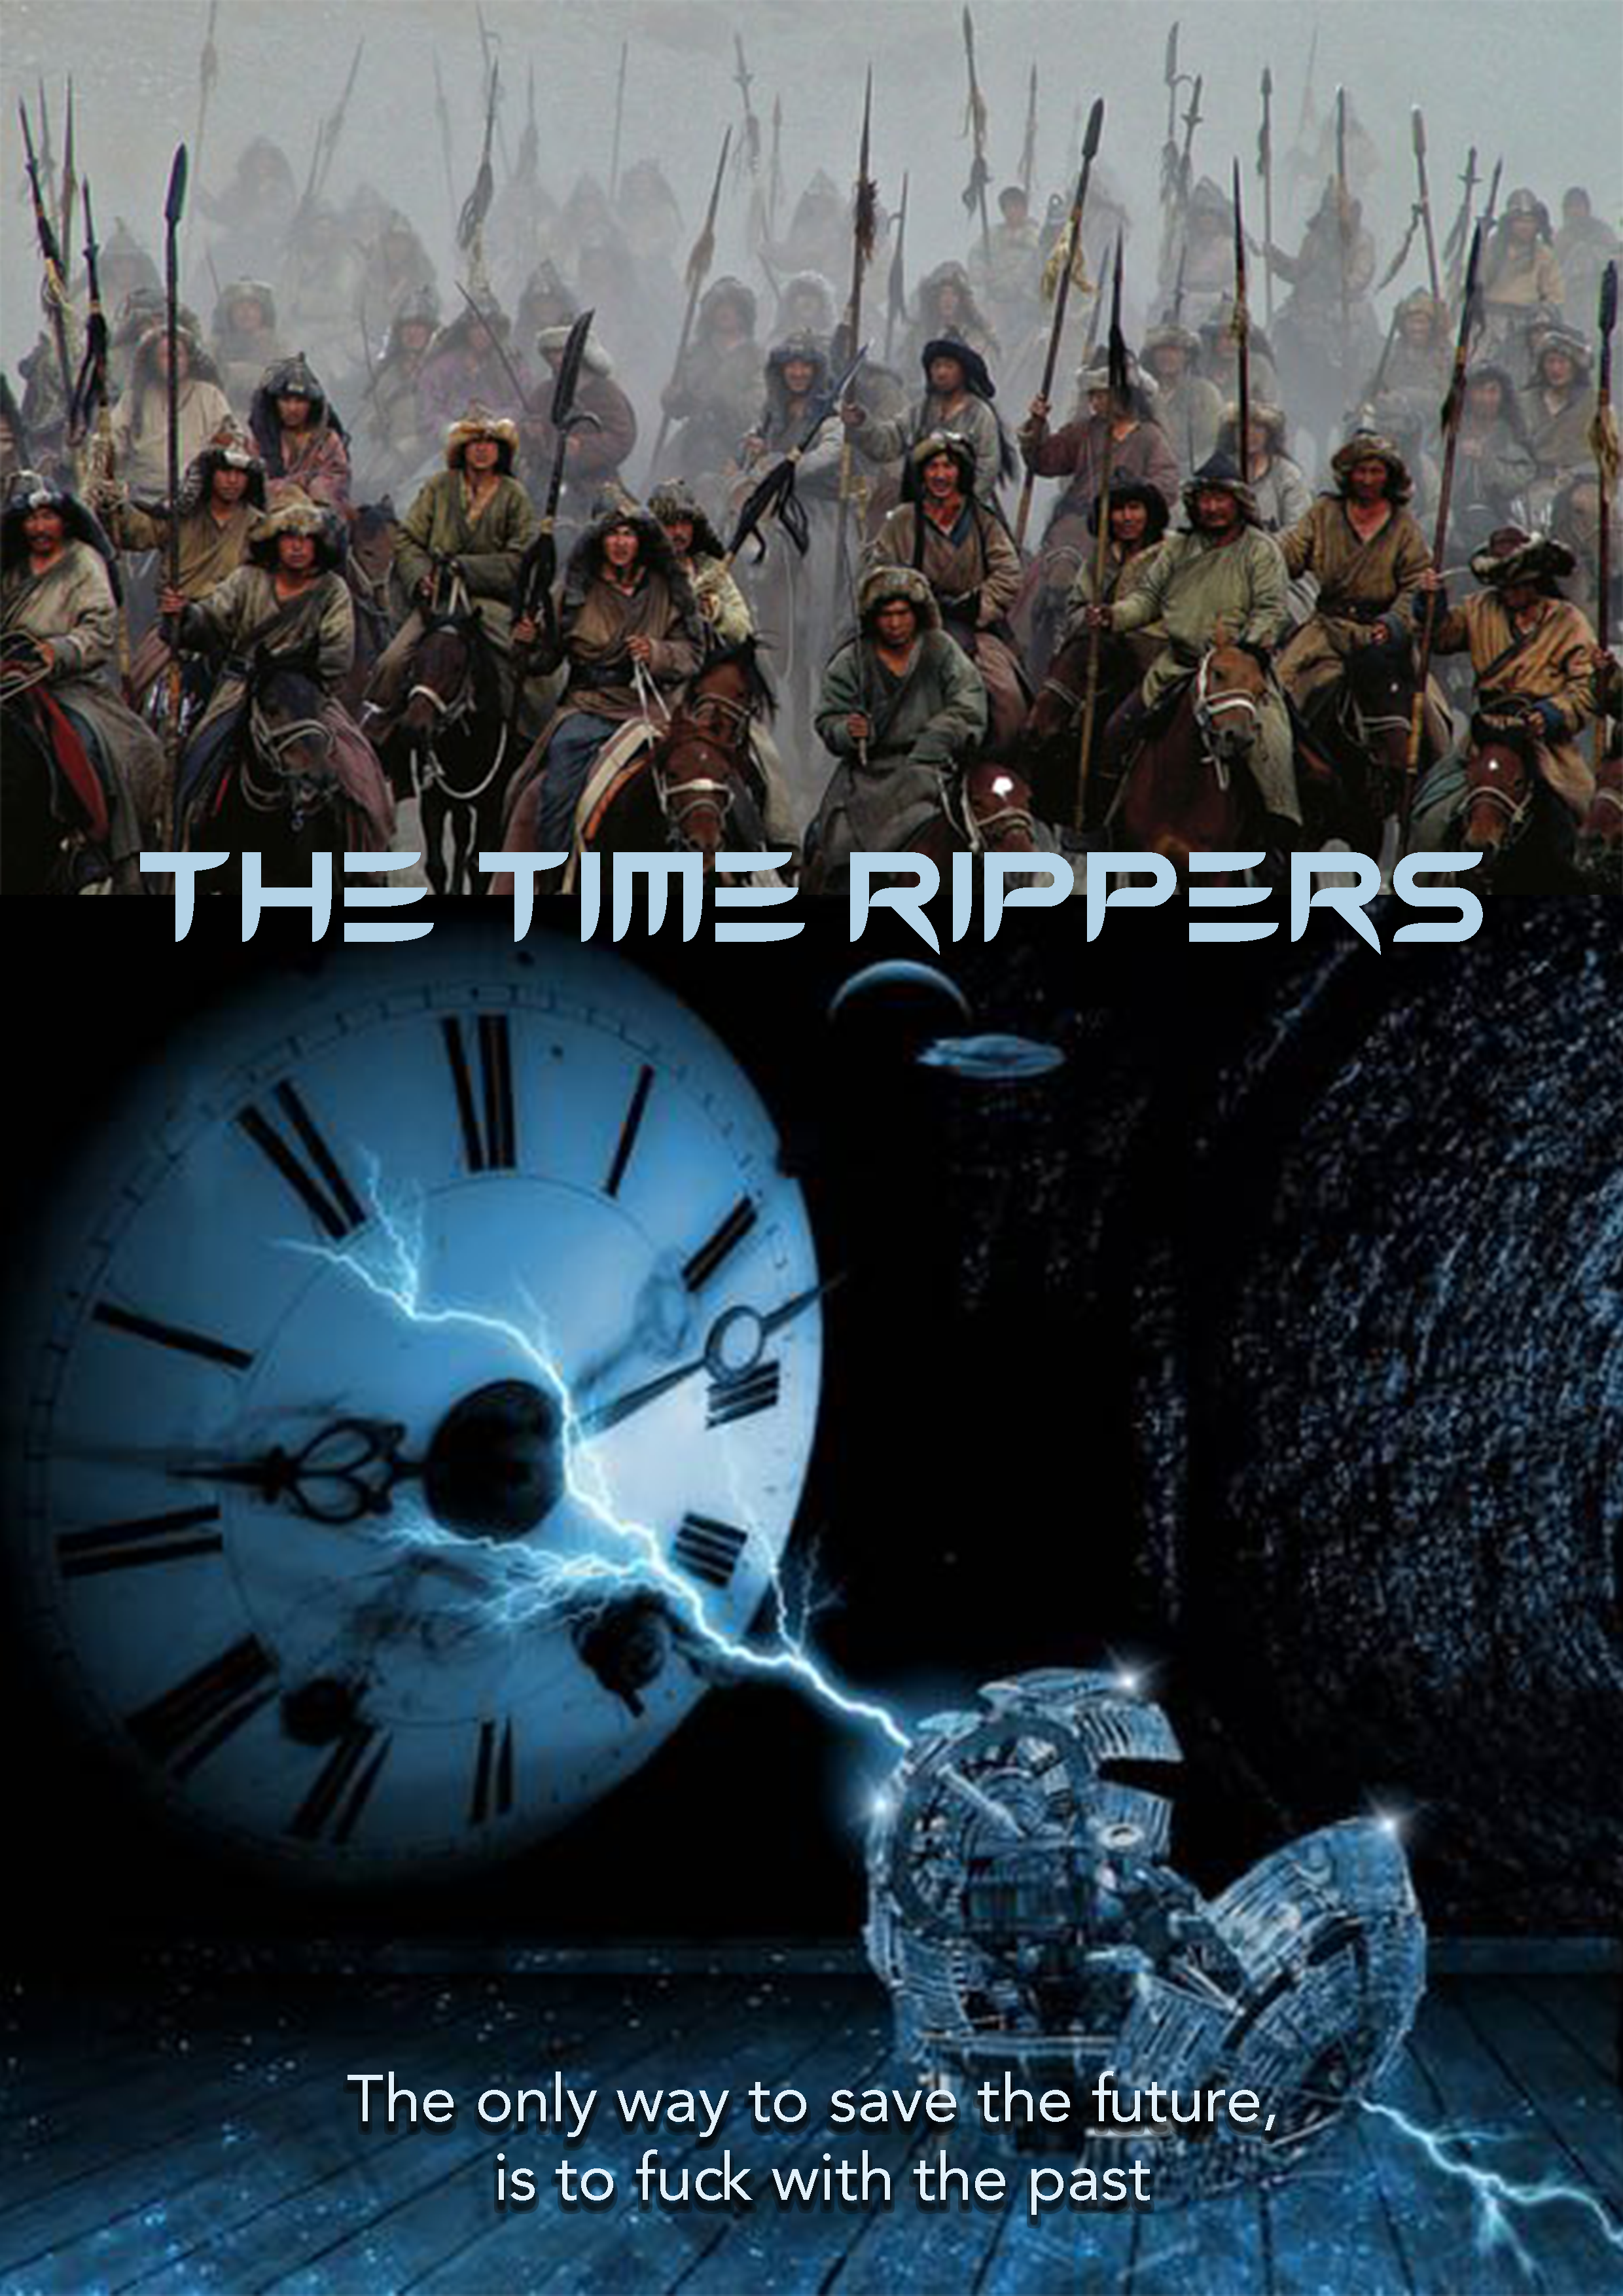 THE TIME RIPPERS